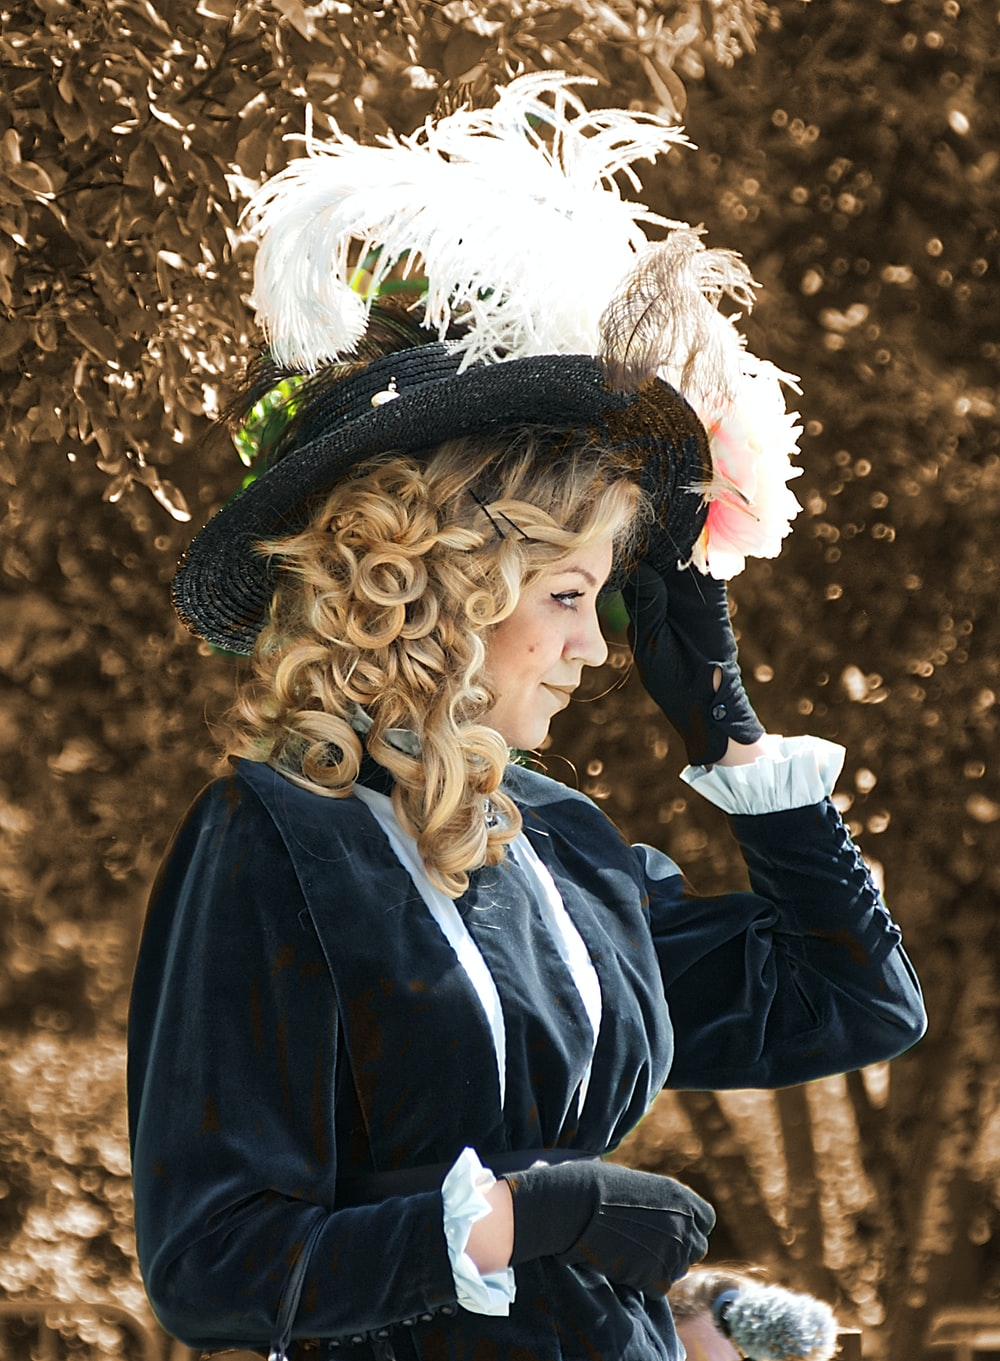 woman in black jacket and white floral headdress